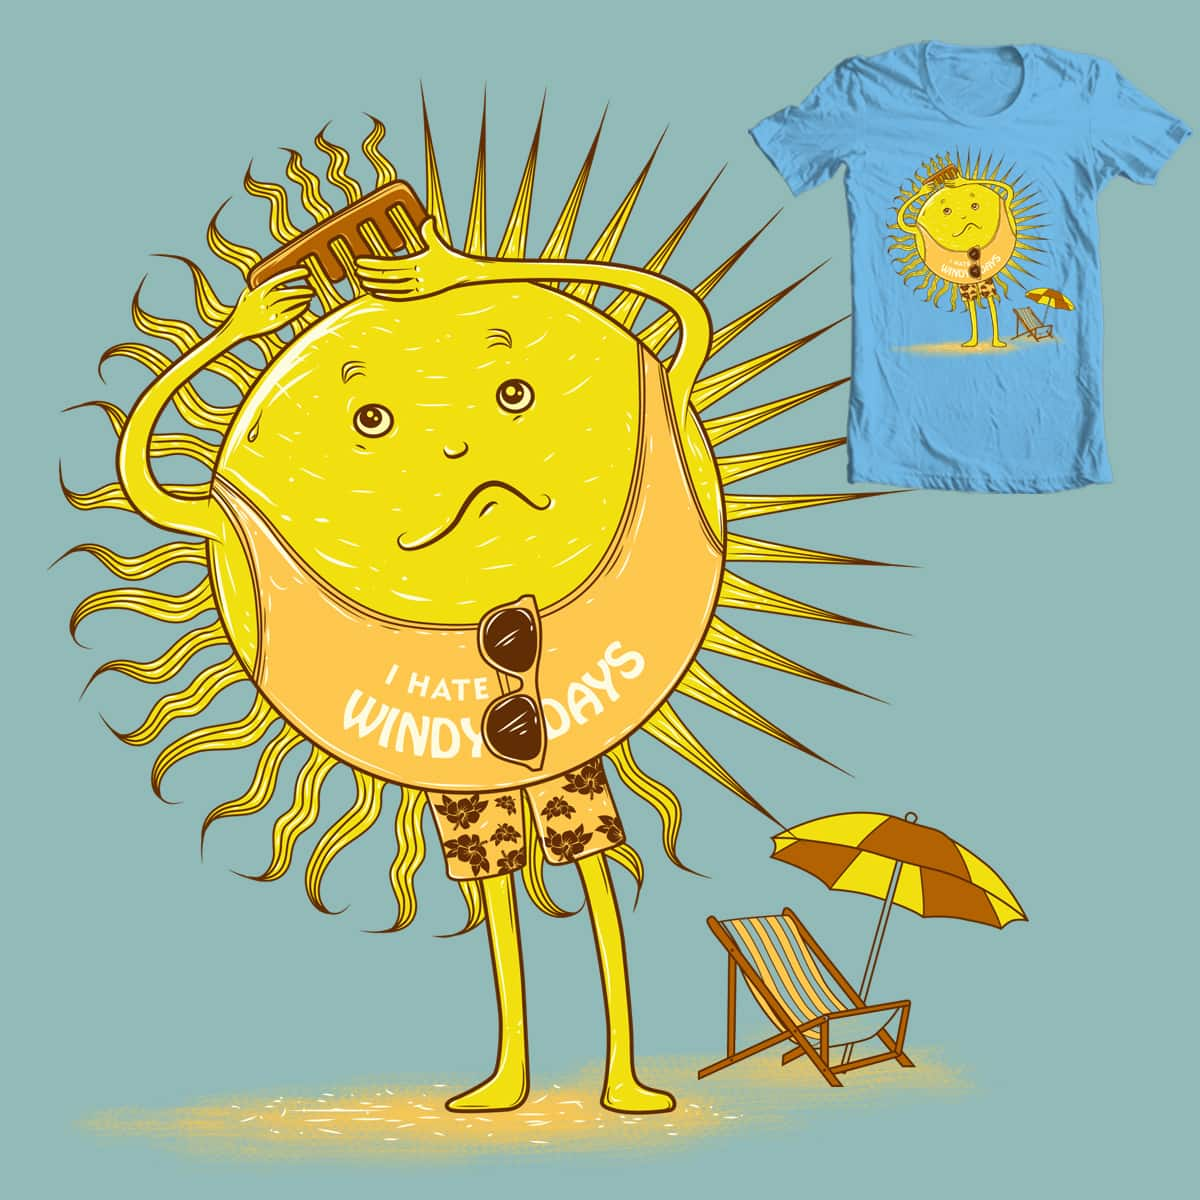 I hate Windy Days :) by Theliboy on Threadless